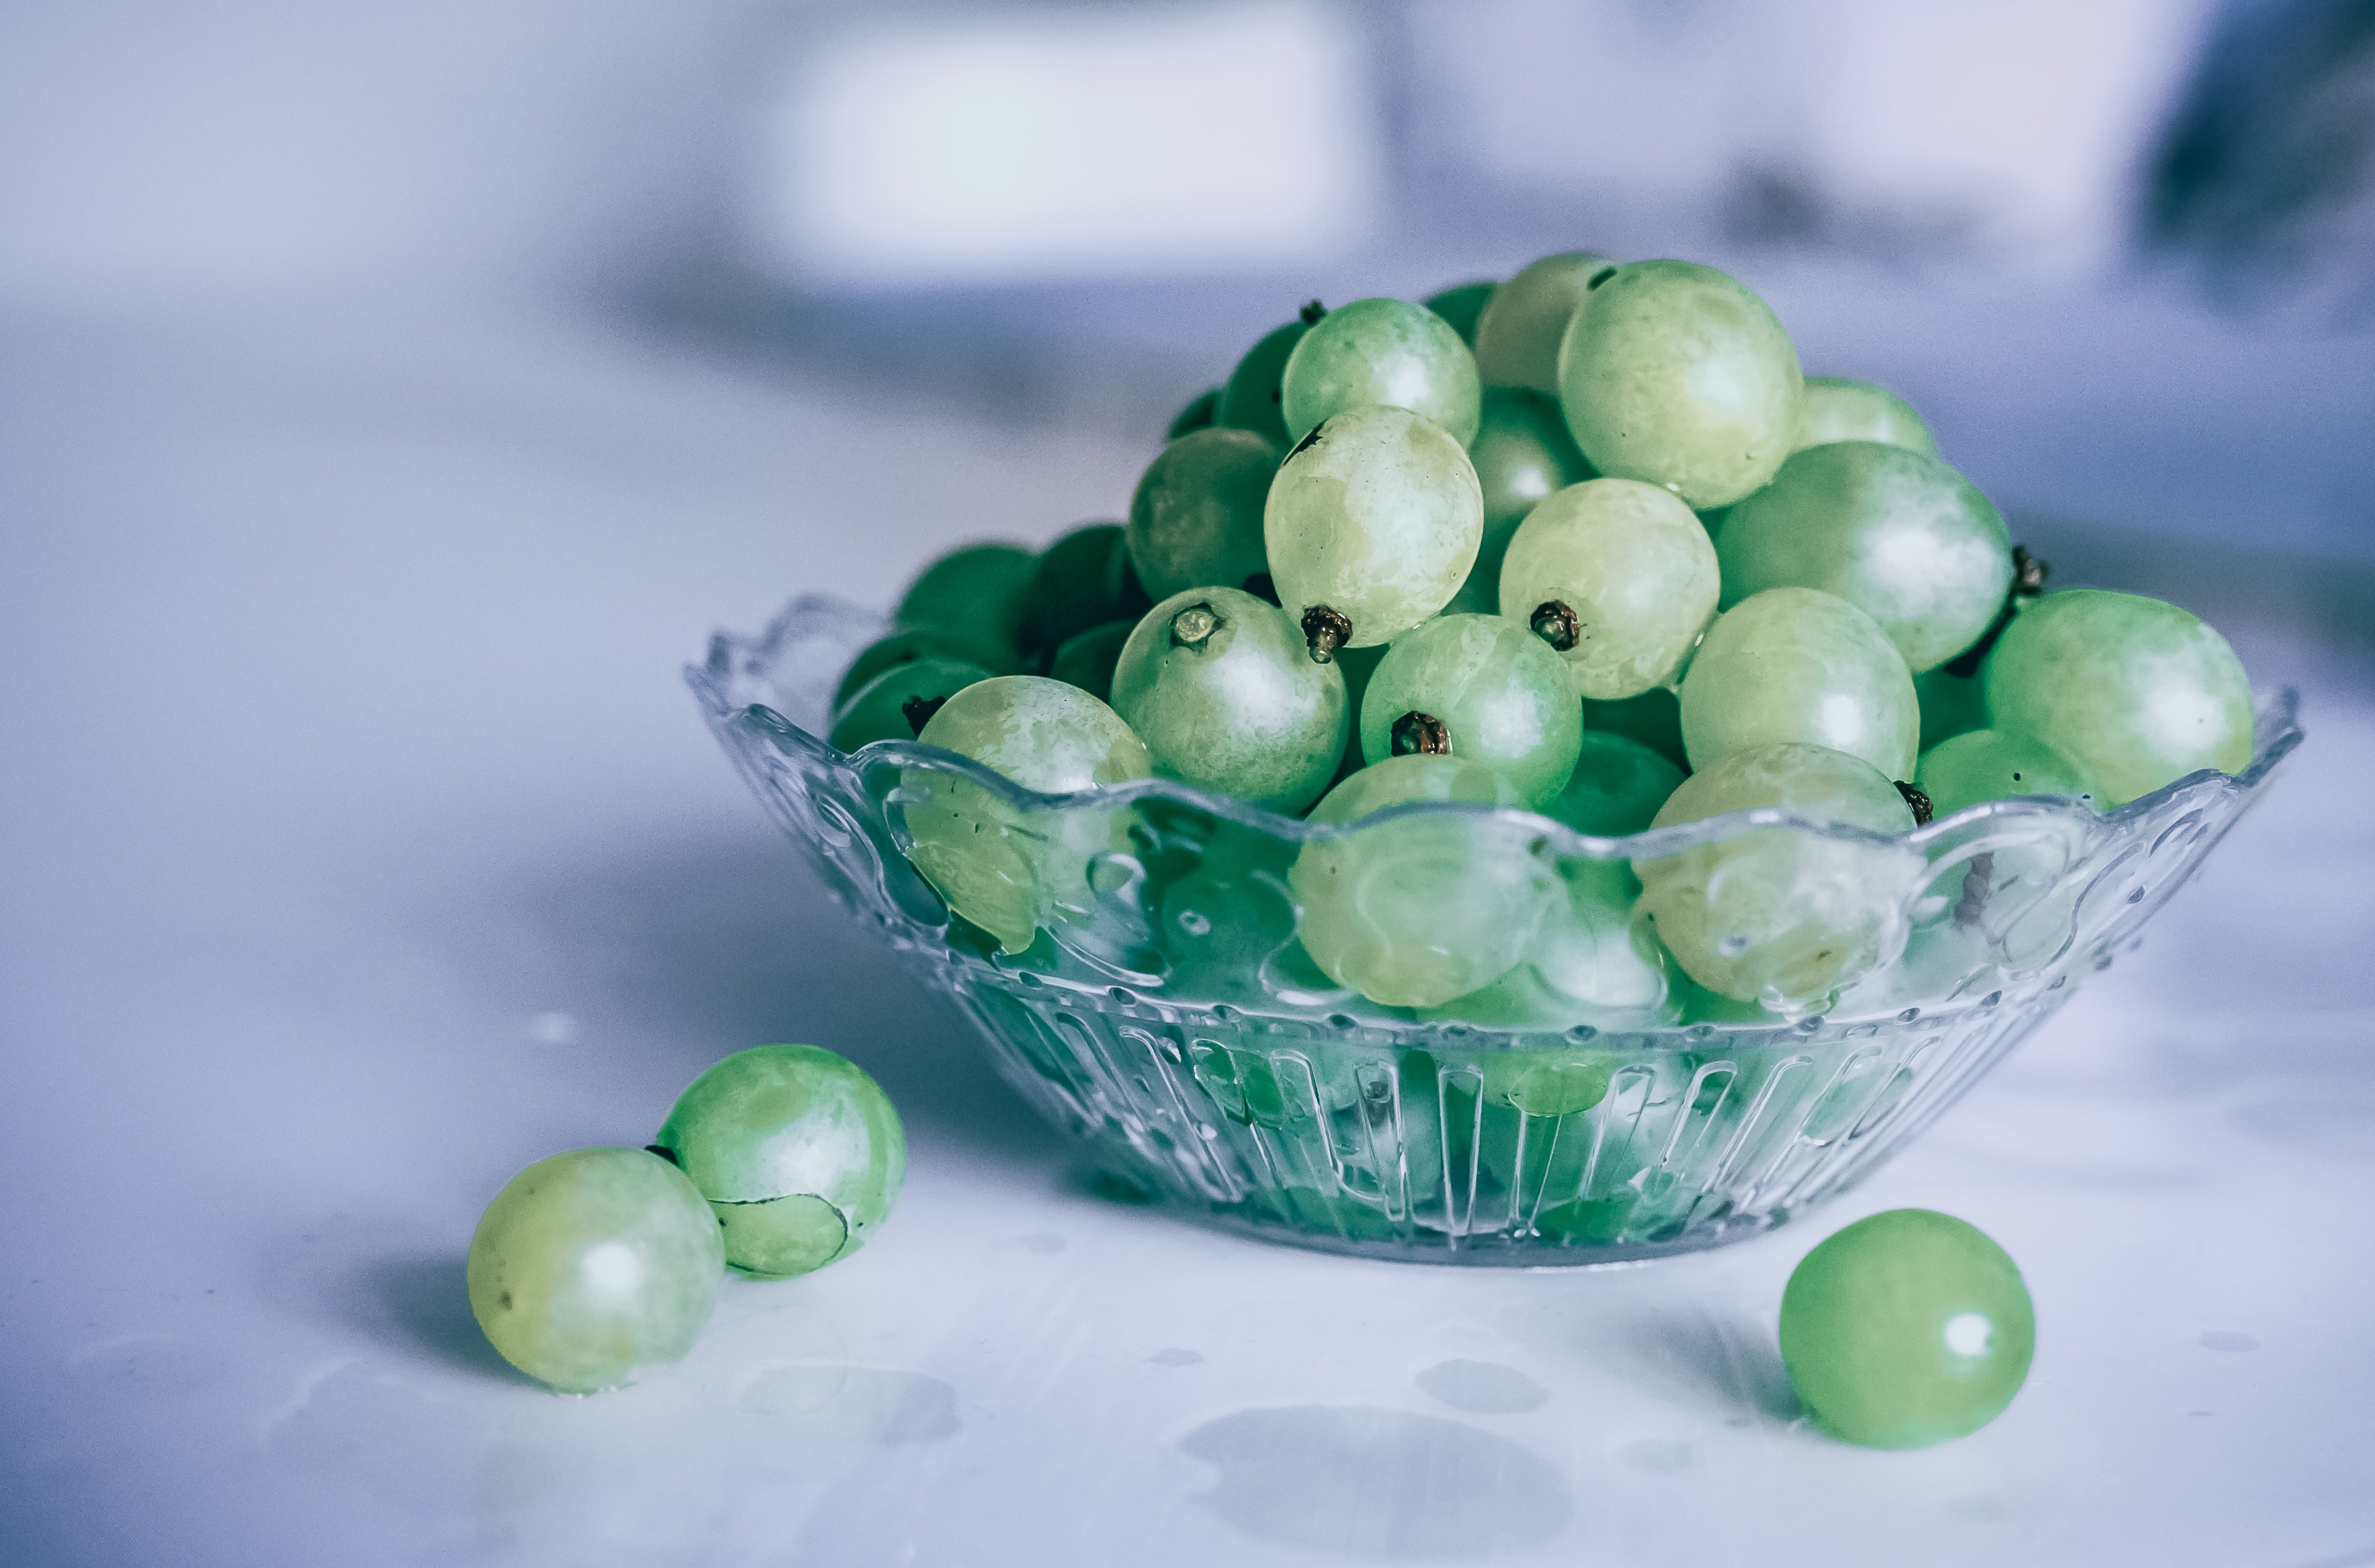 grapes, Spain, New Years, Festive, Tradition, Green, grapes bowl on marble table Europe food Christmas tradition